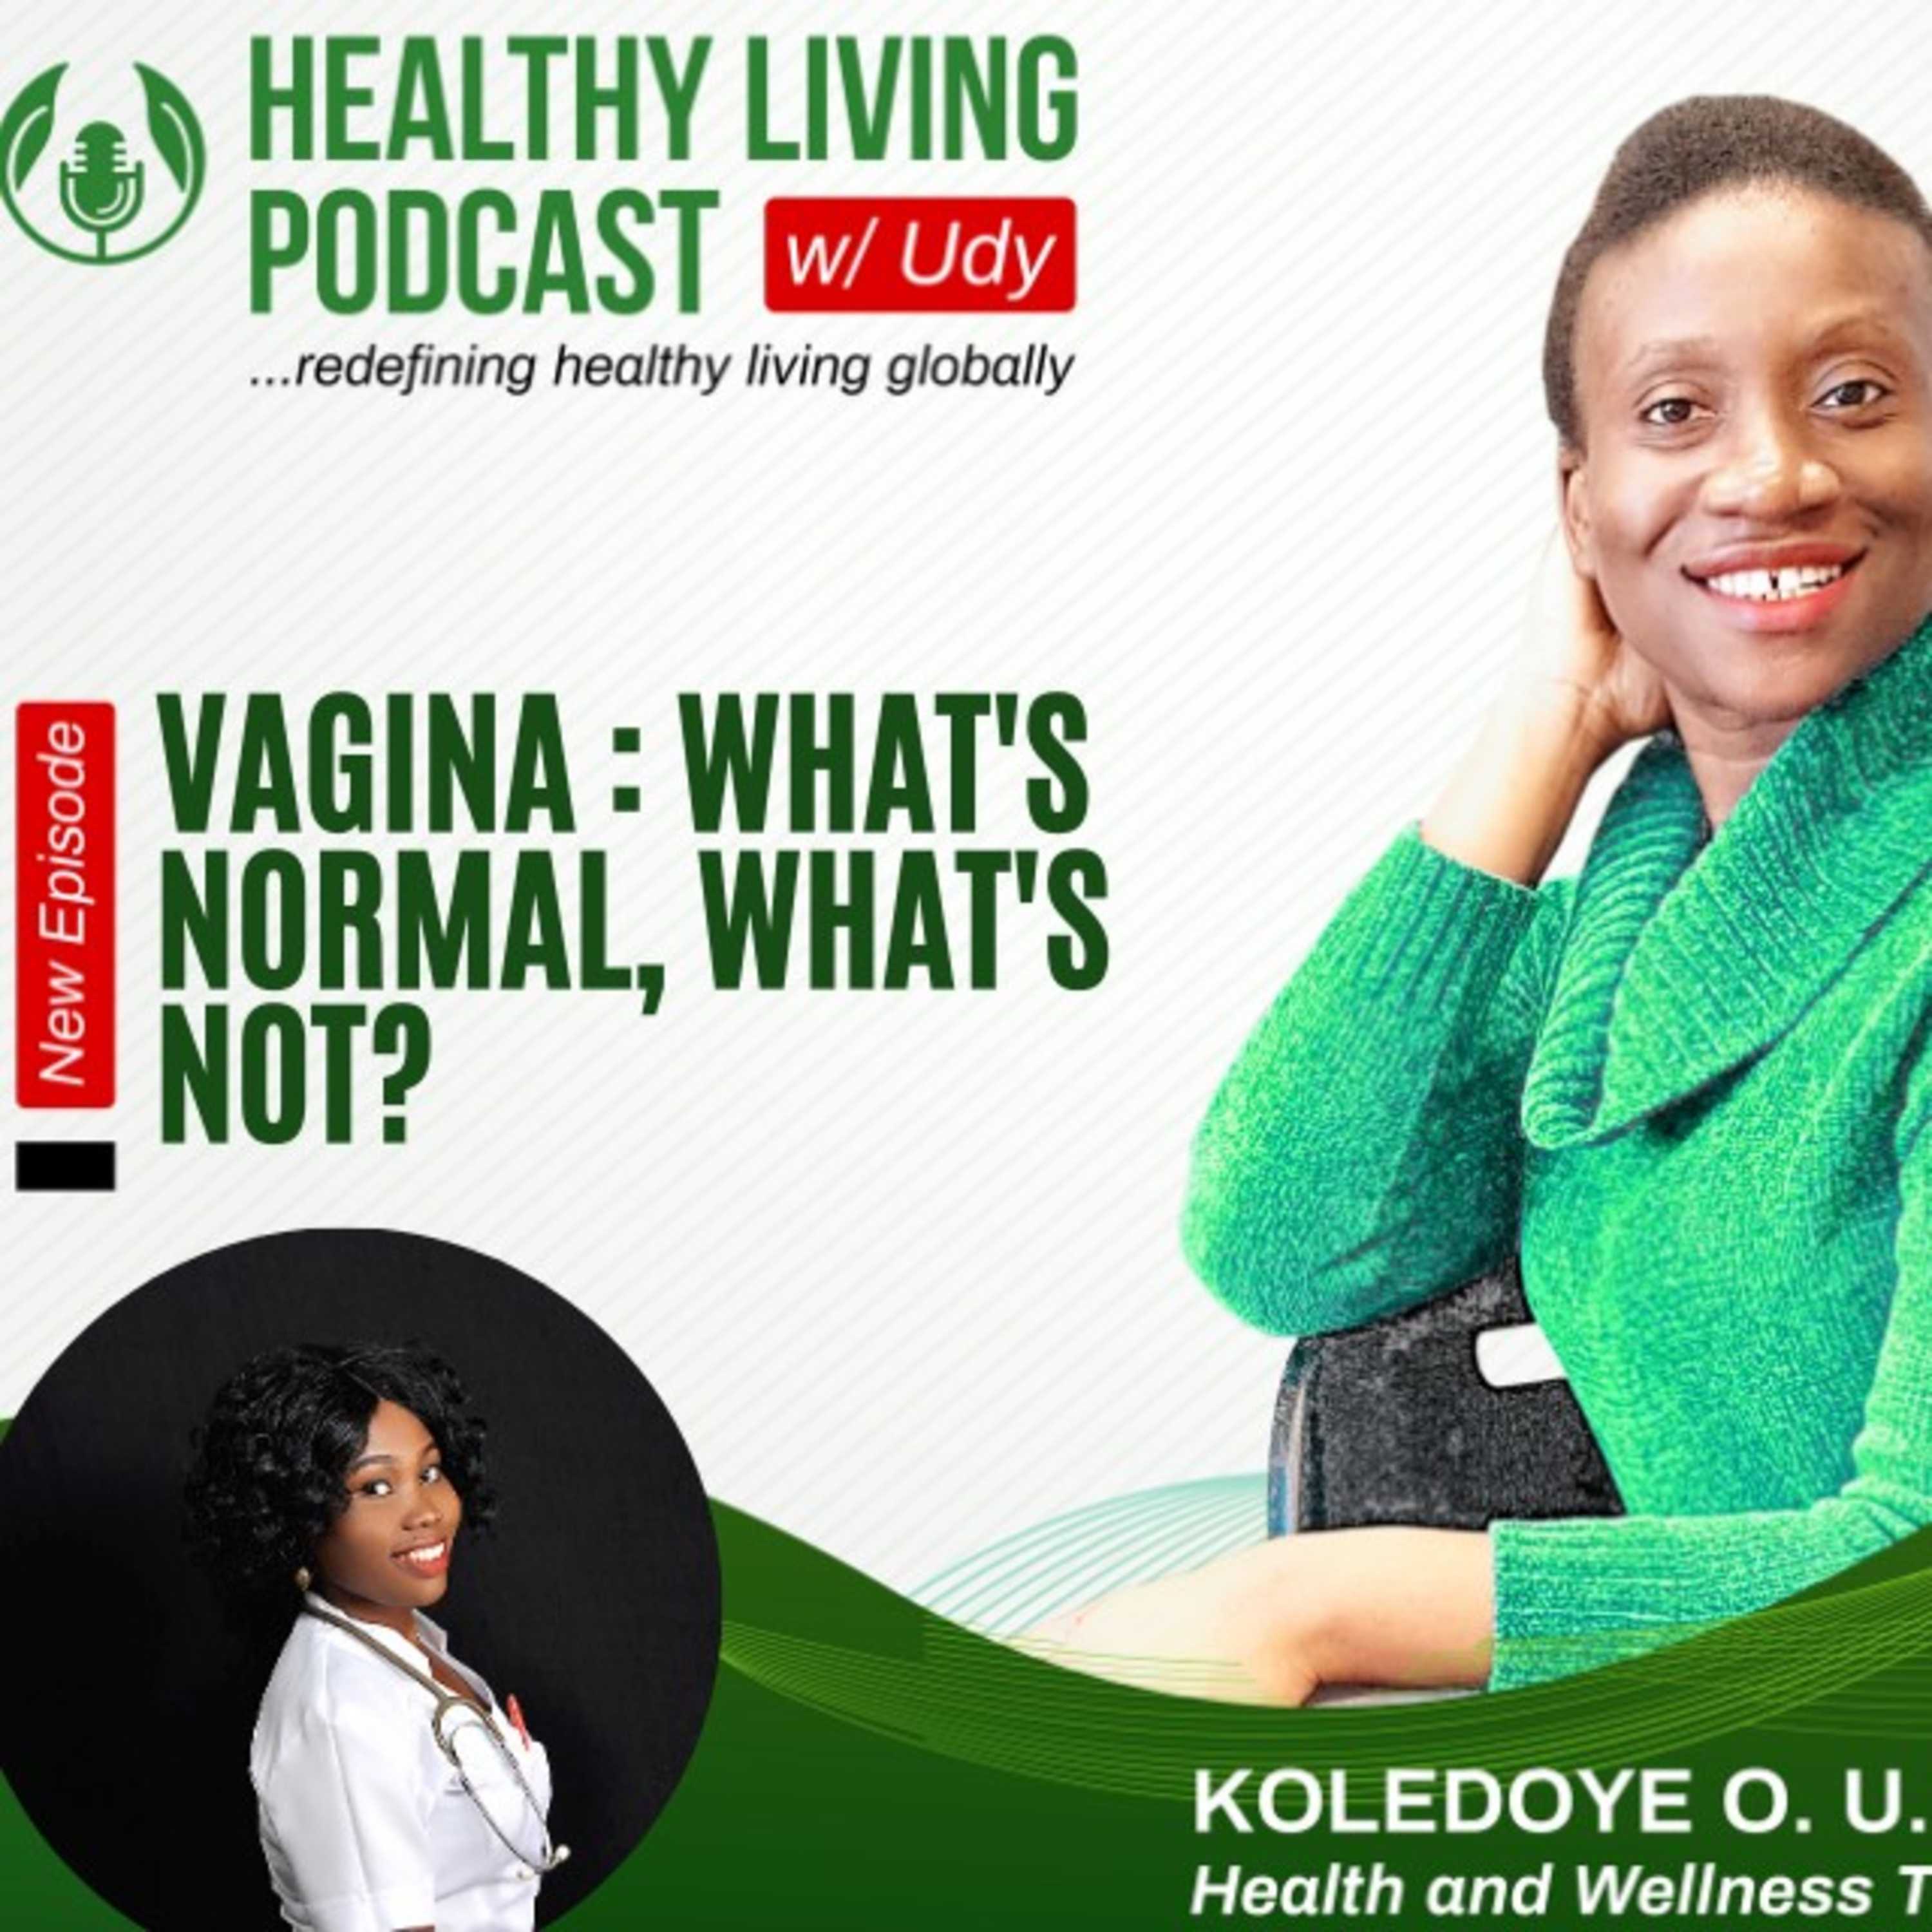 Healthy Living With Udy. on Jamit